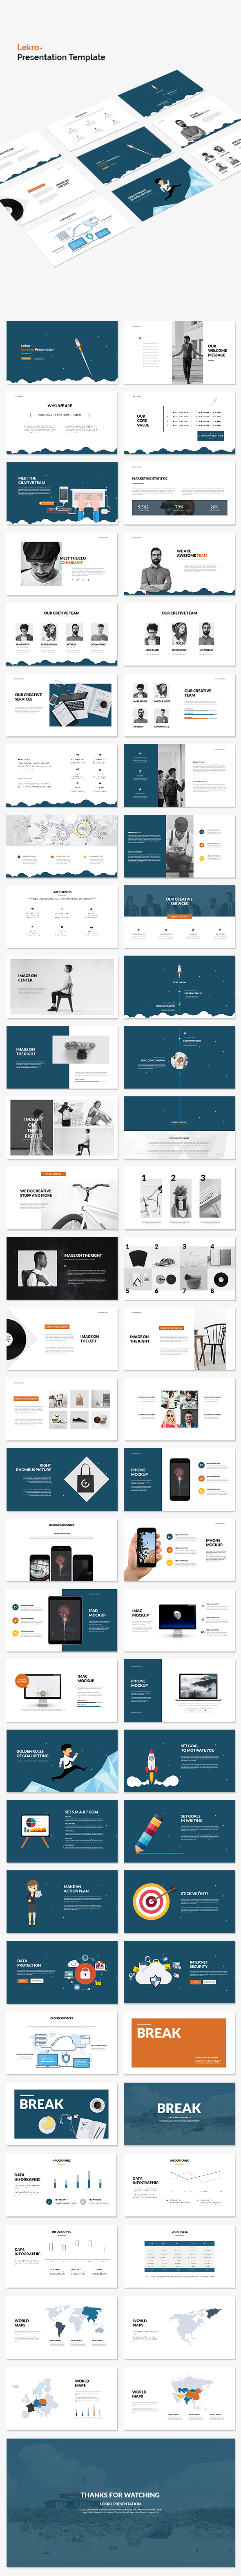 Lekro Powerpoint Presentation Template